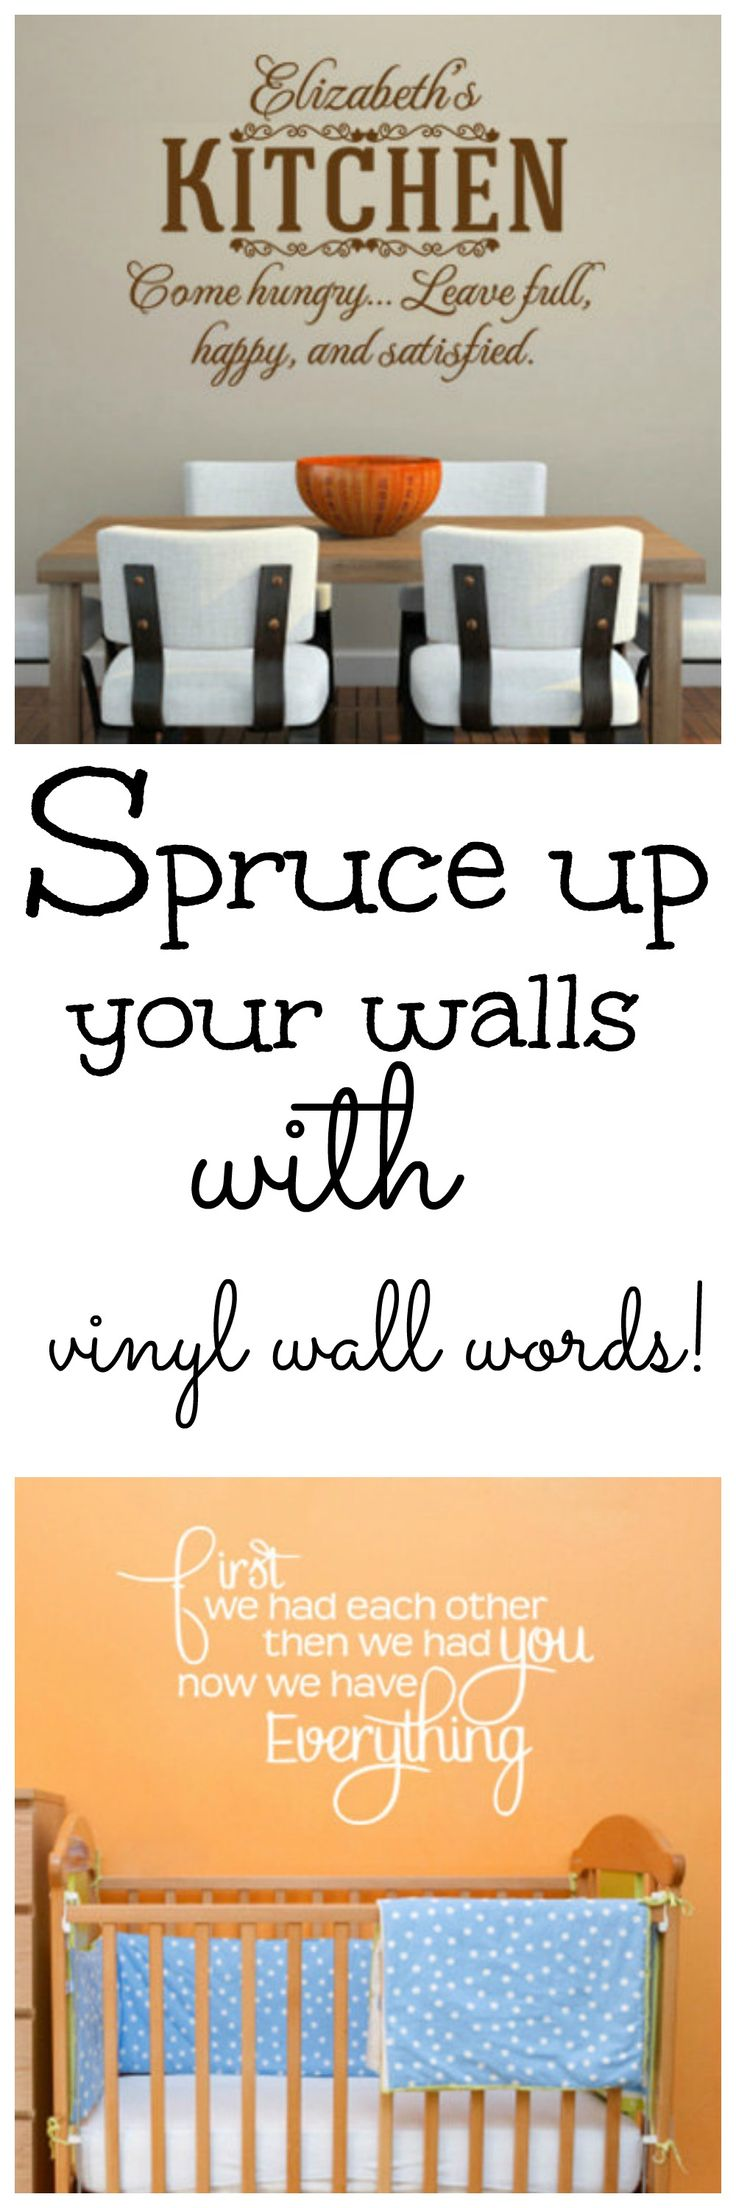 How to scrapbook words - Vinyl Wall Words And Quotes Of Inspiration Giveaway